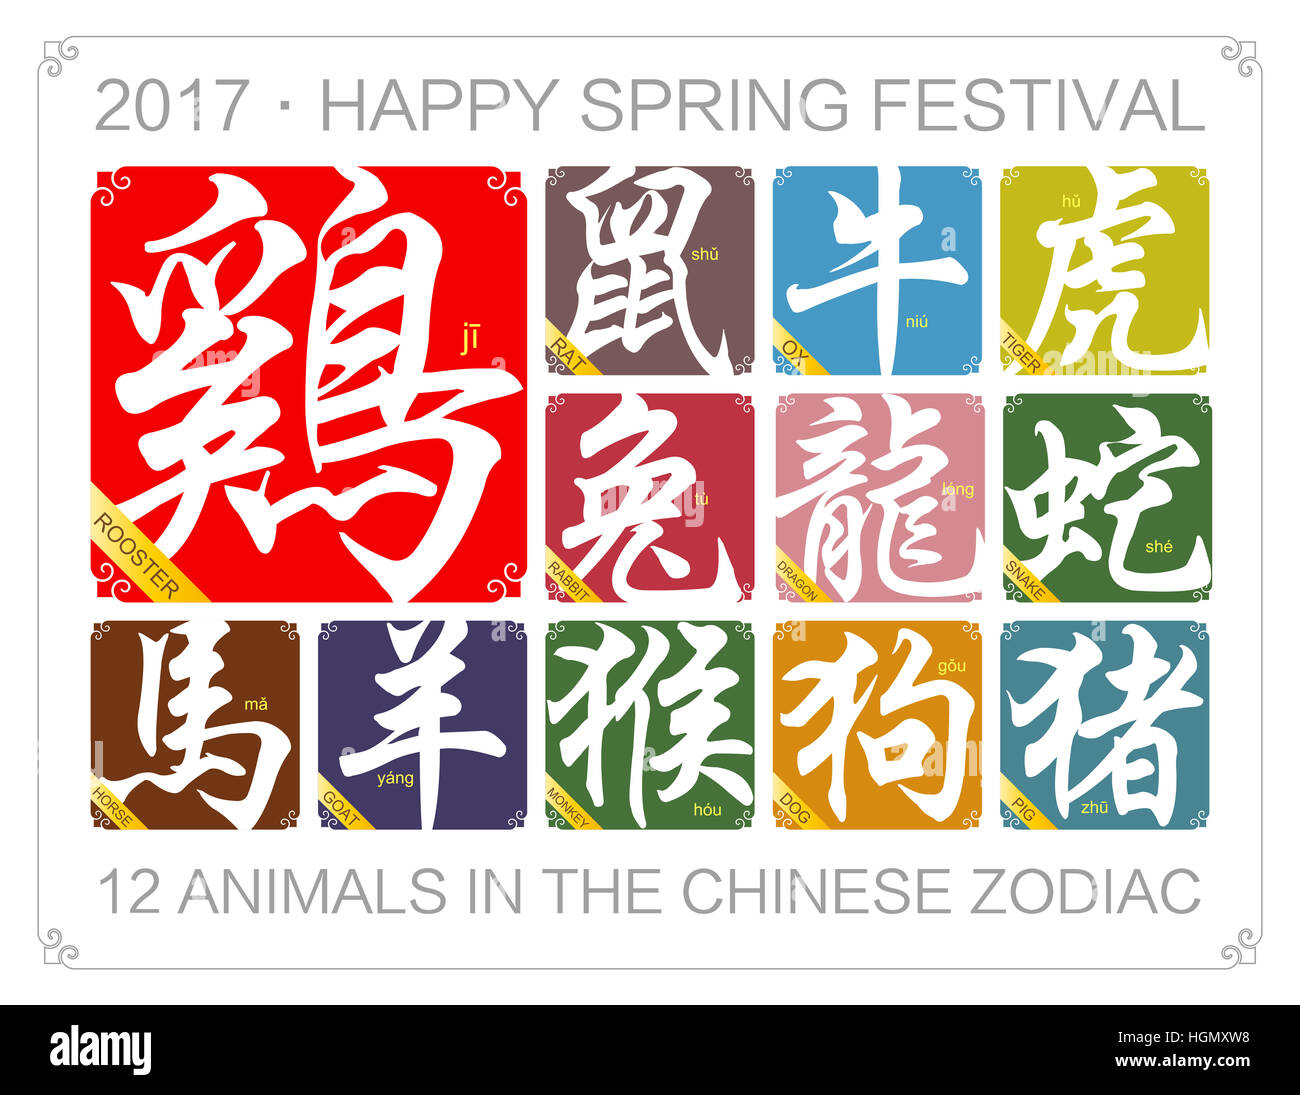 Chinese zodiac signs with the year of the rooster in 2017 stock chinese zodiac signs with the year of the rooster in 2017 buycottarizona Images